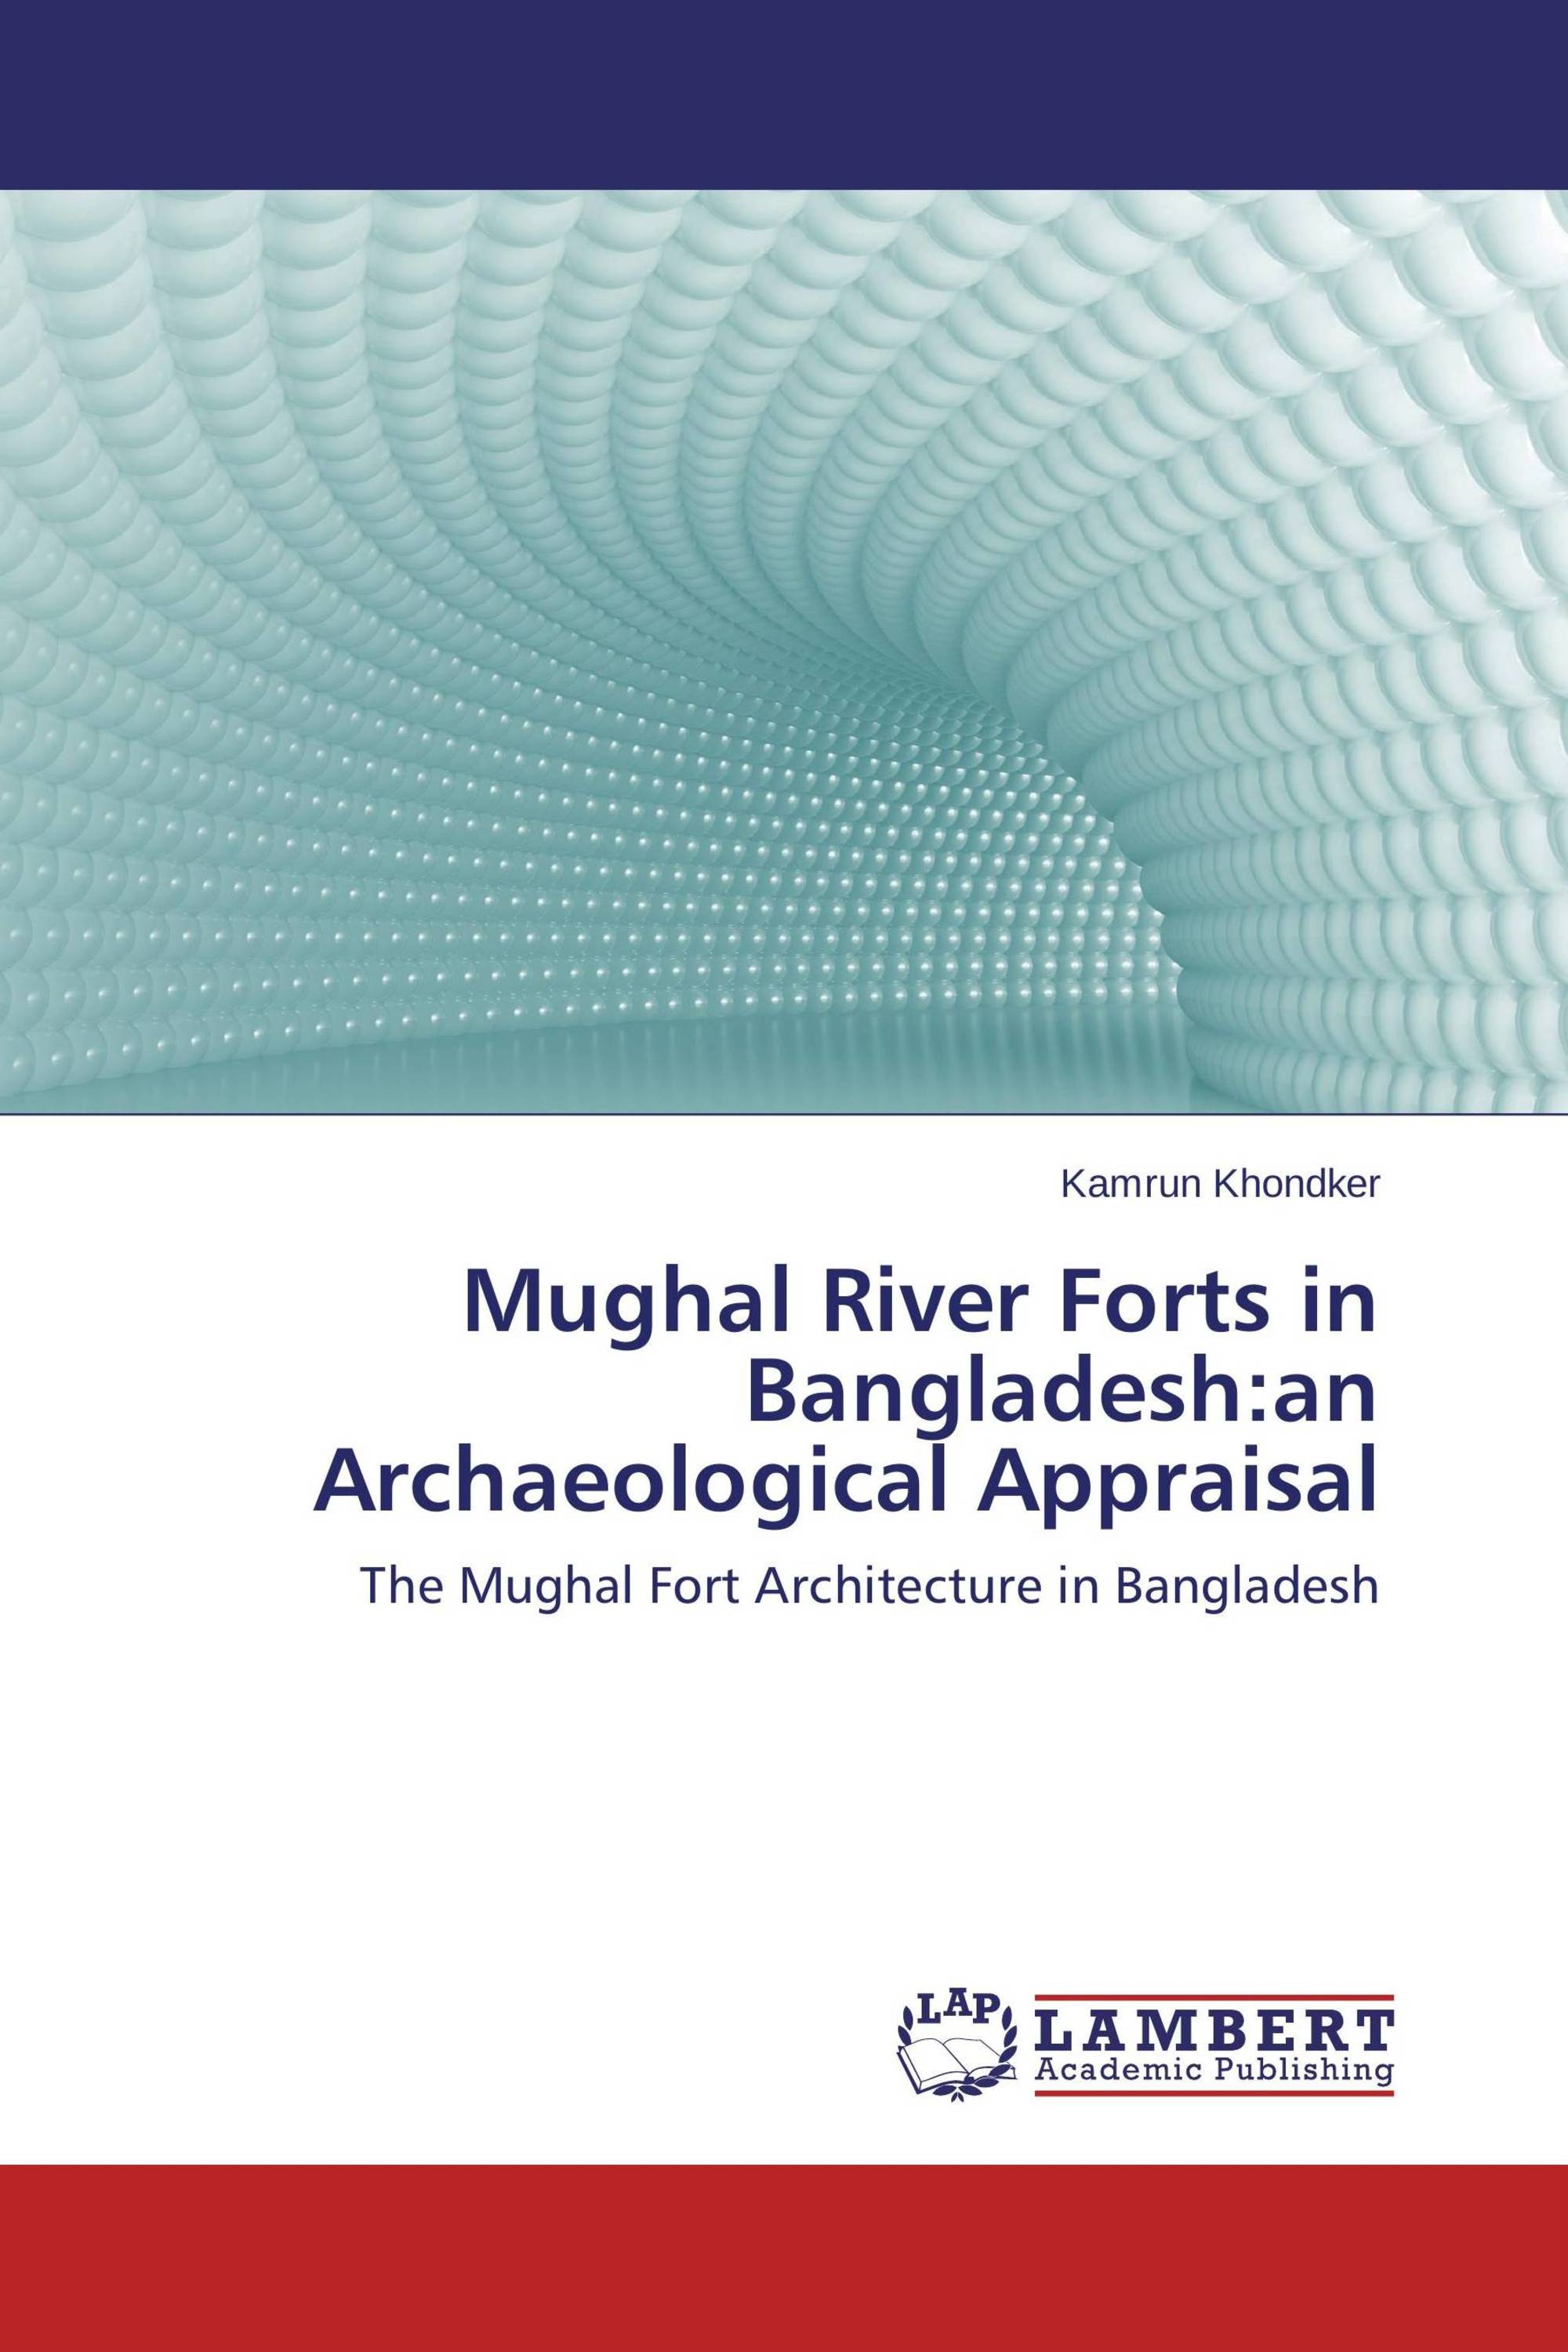 Mughal River Forts in Bangladesh:an Archaeological Appraisal